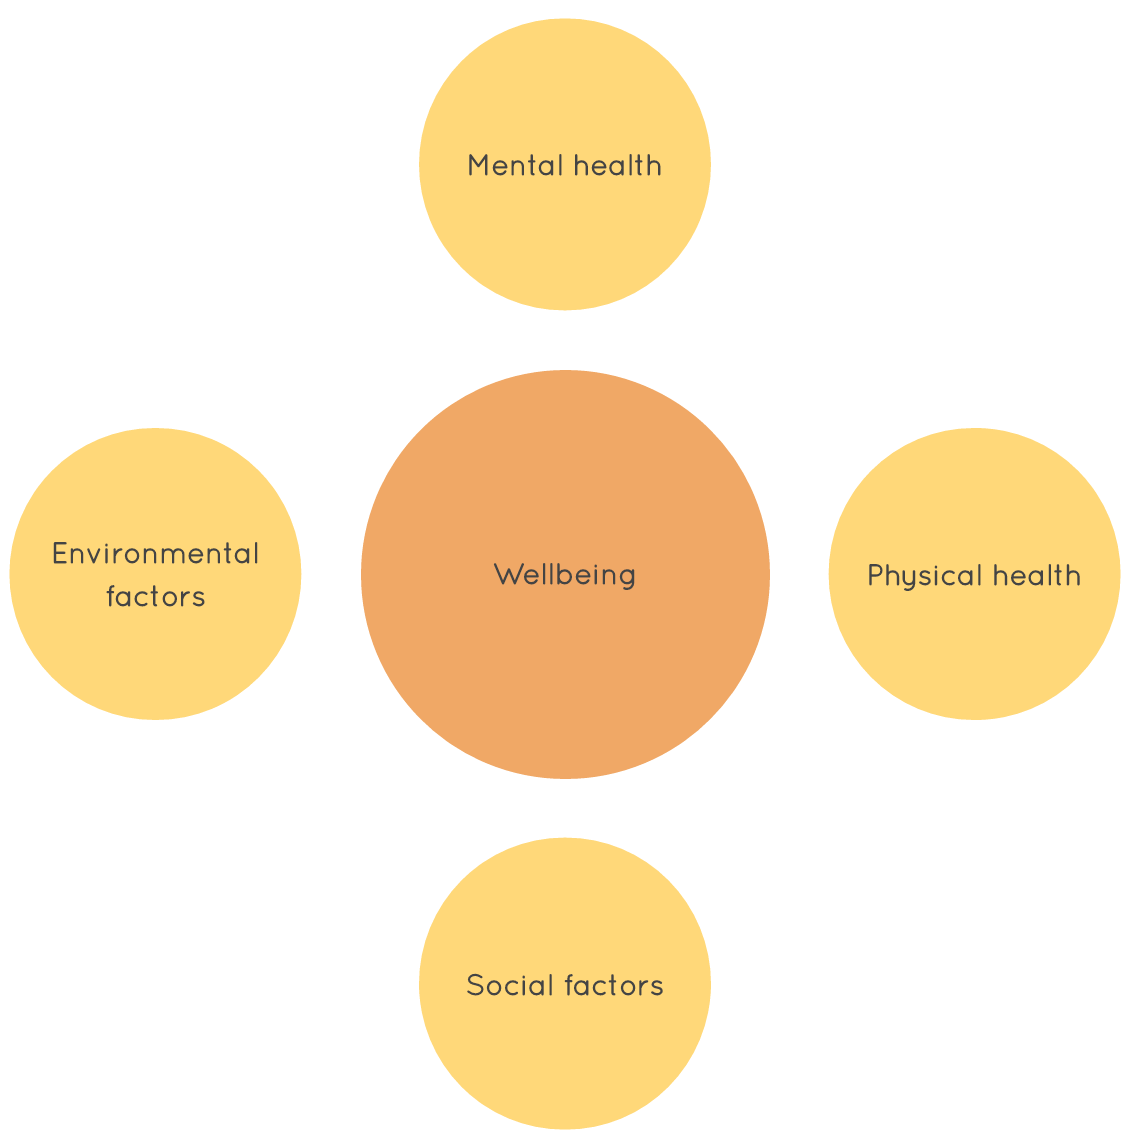 Figure 1: Holistic health care framework